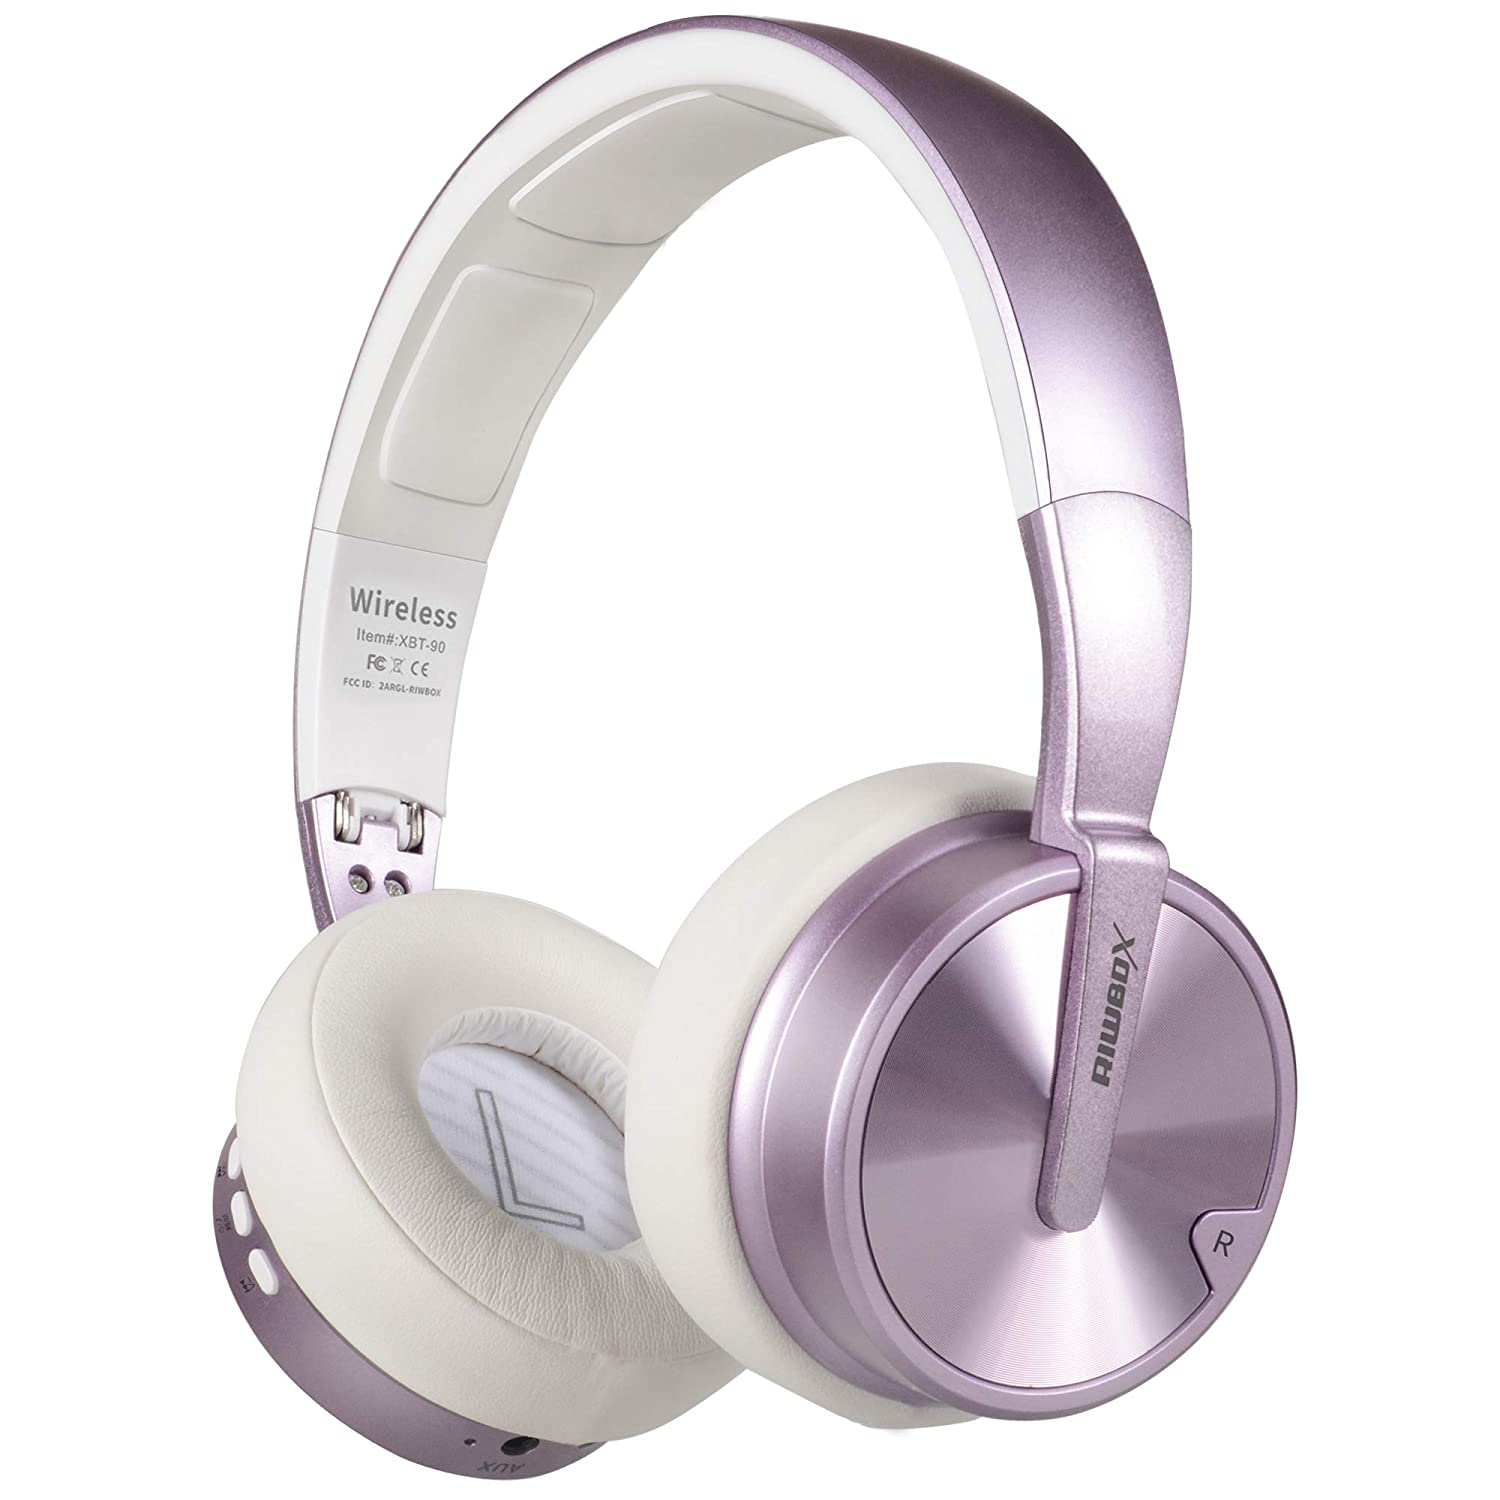 Bluetooth Headphones, Riwbox XBT-90 Foldable Wireless Bluetooth Headphones Over Ear Hi-Fi Stereo Wireless Headset with Mic/TF Card and Volume Control Compatible for PC/Cell Phones/TV/ipad (Purple)